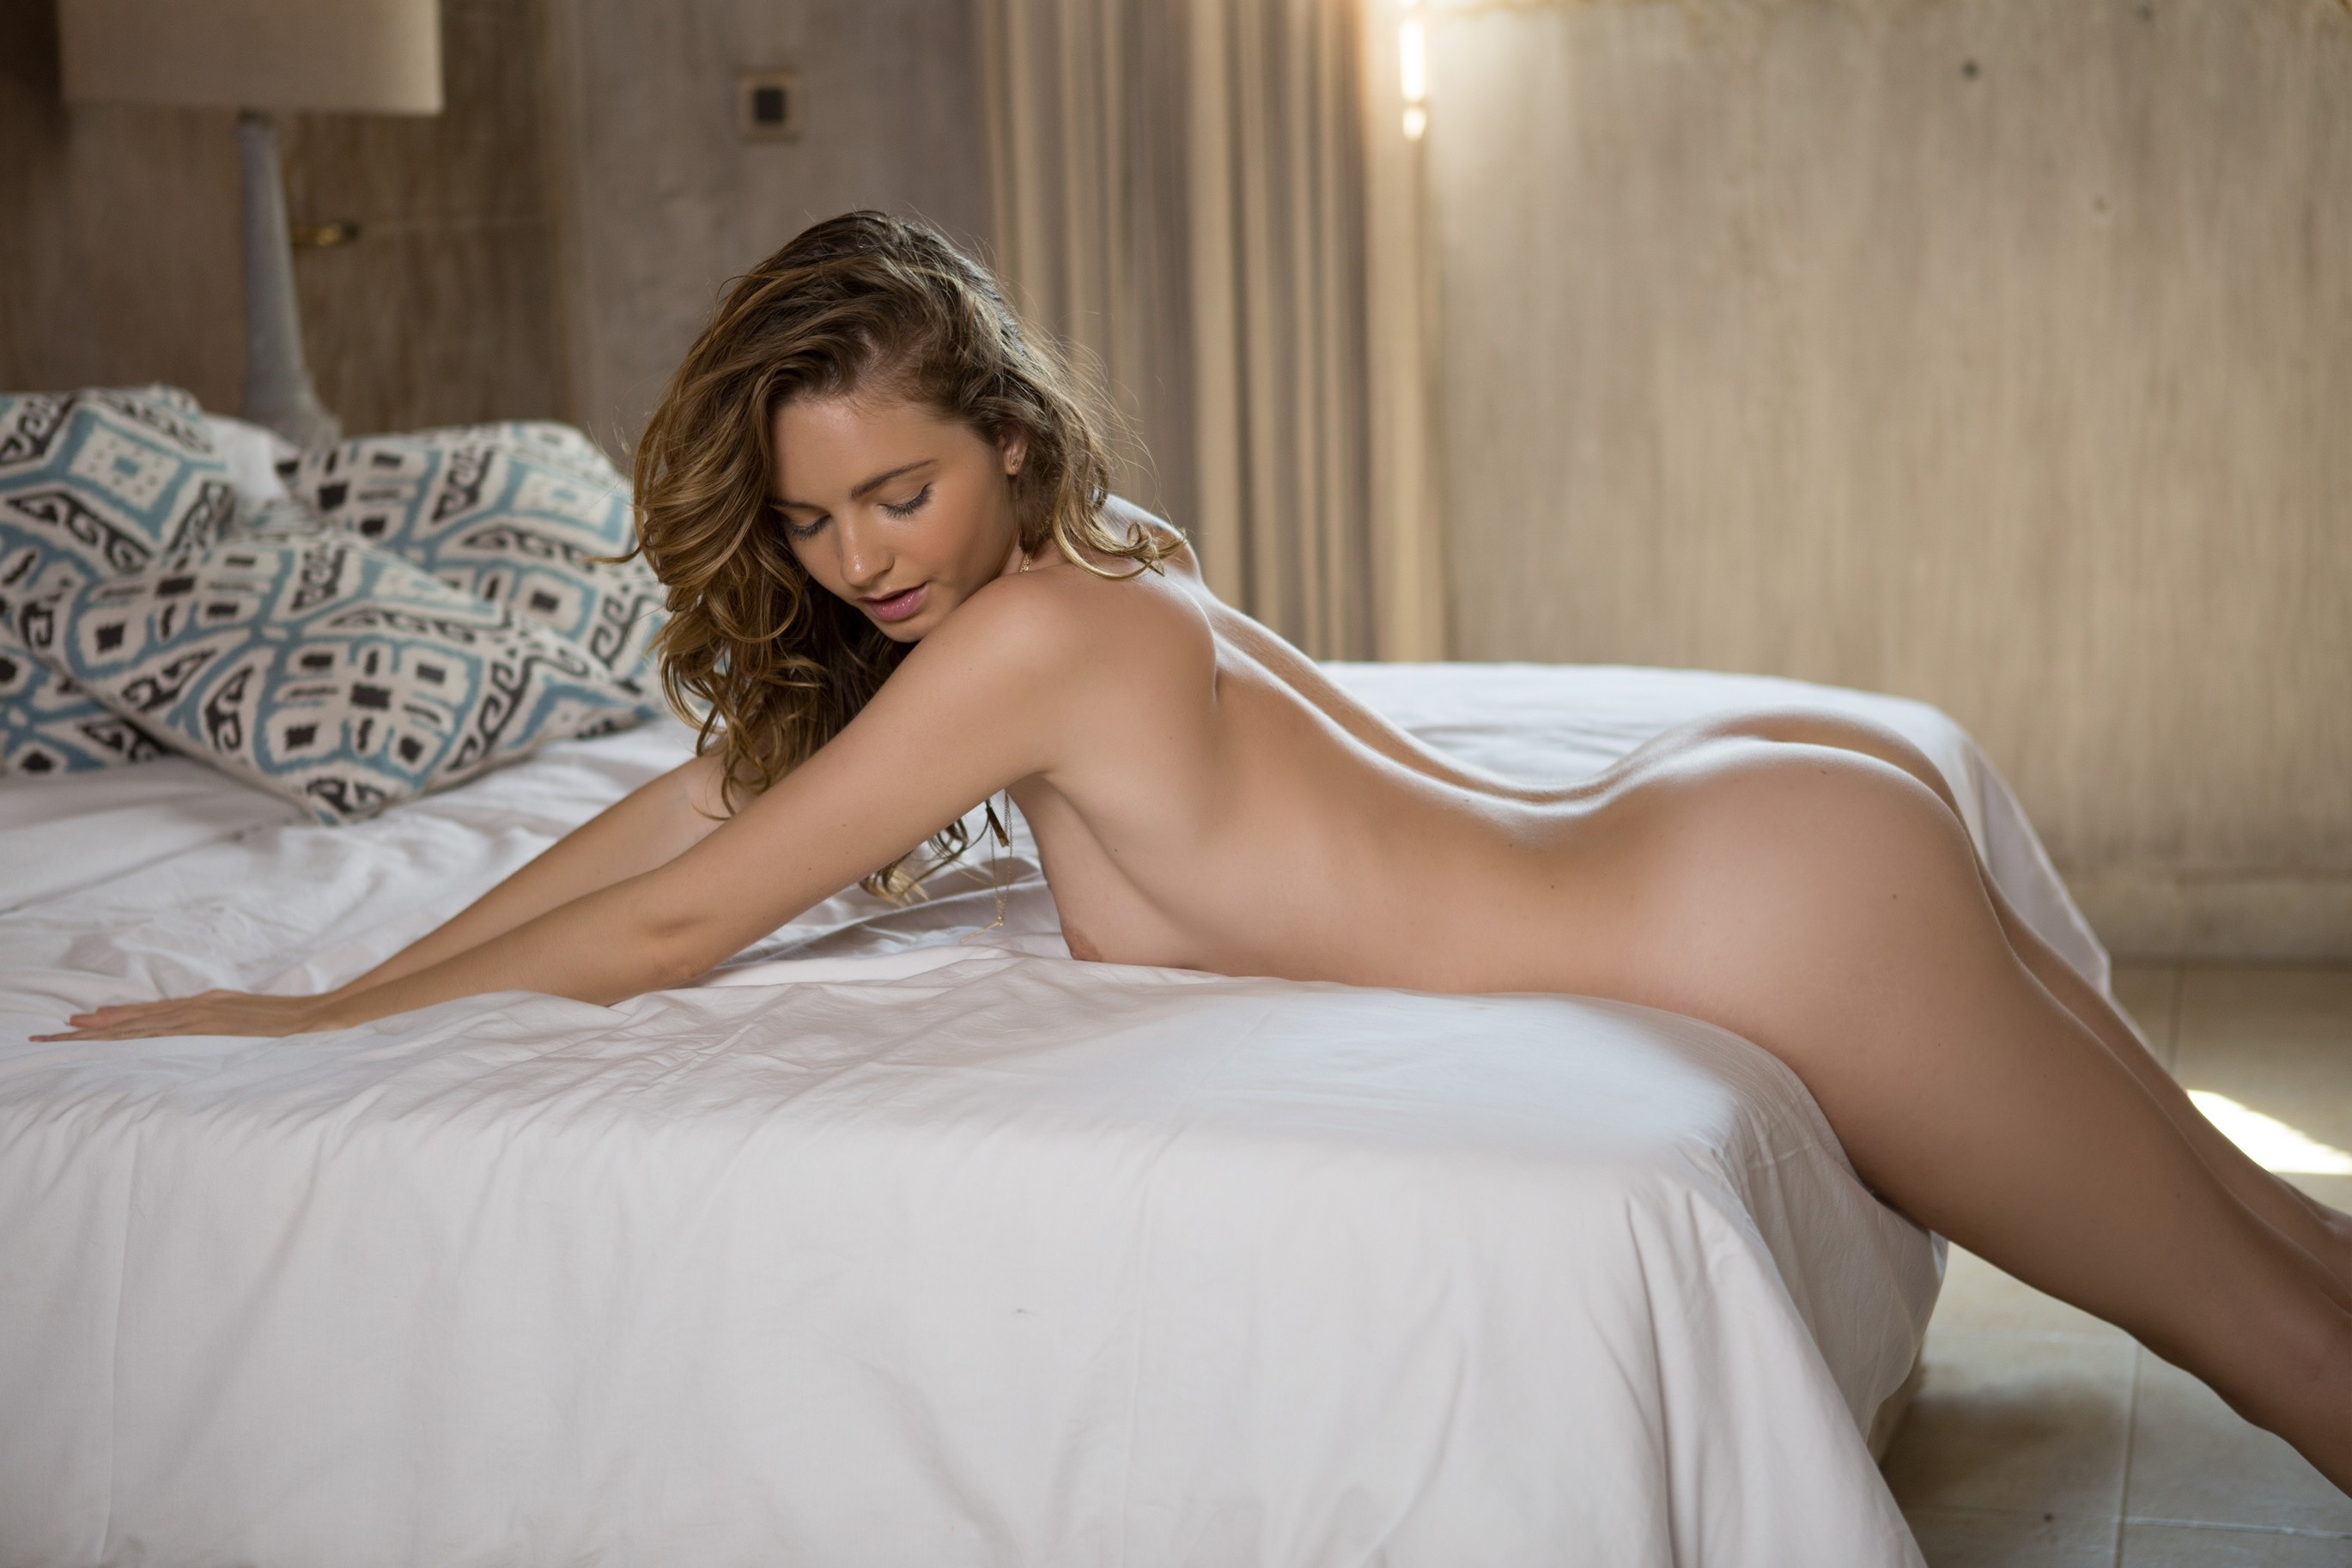 Watch Madonna young naked 7 new photos video